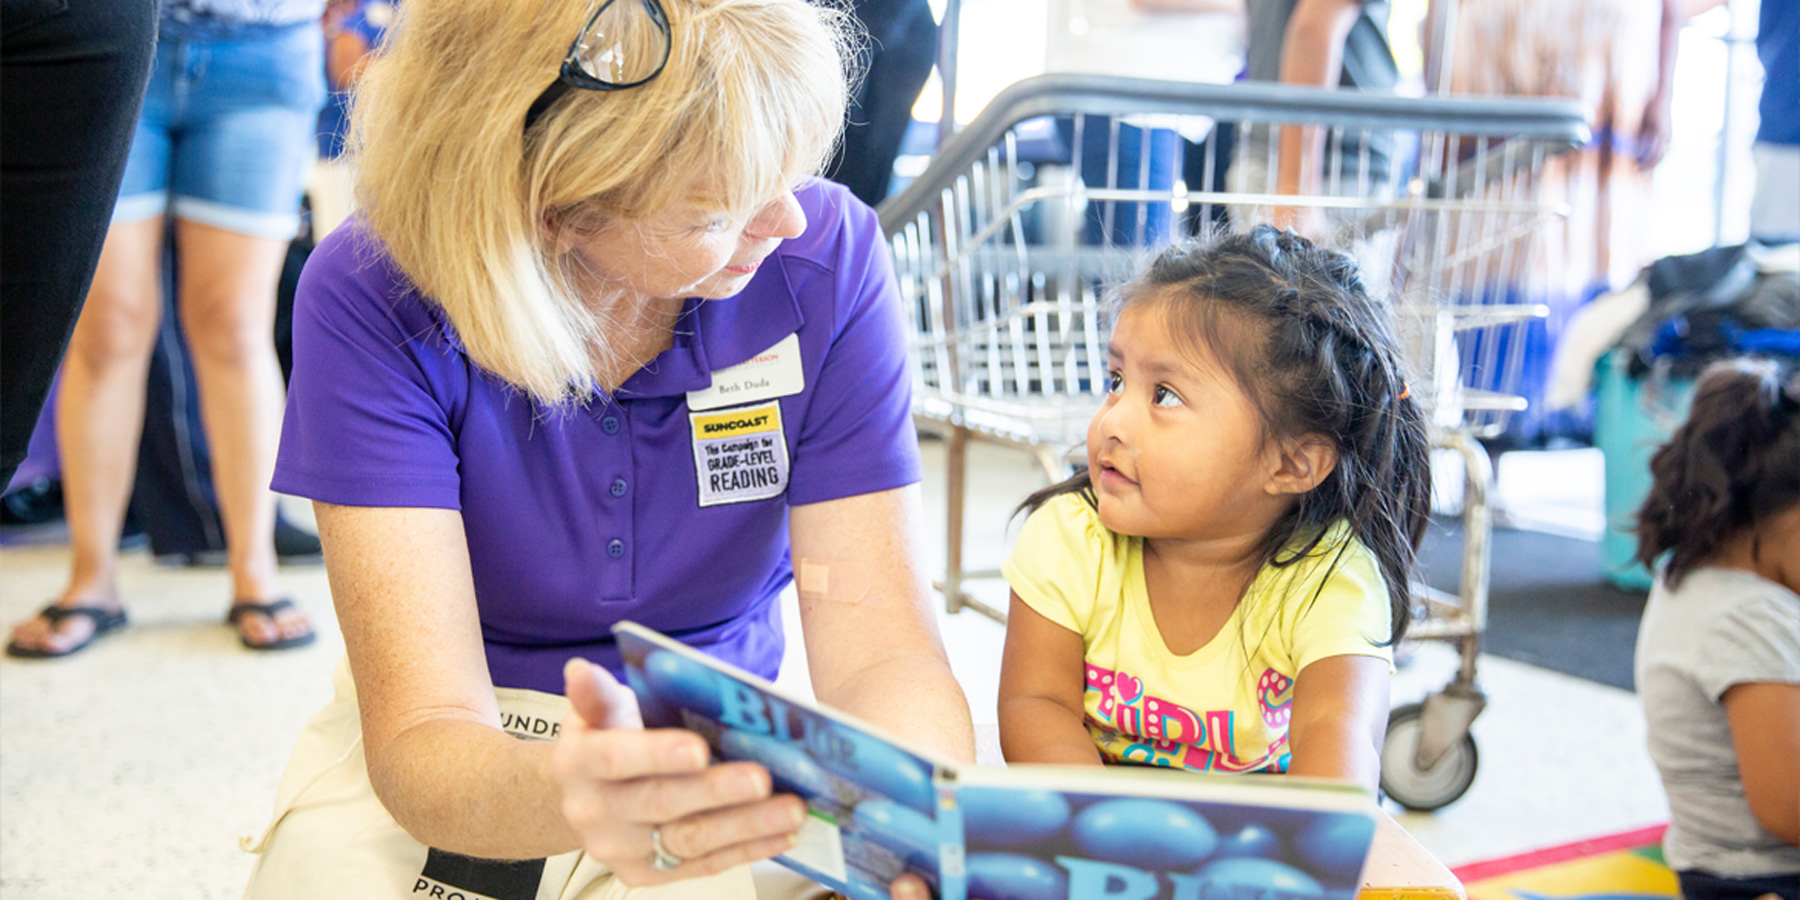 Beth Duda reads to an adorable toddler in a laundromat